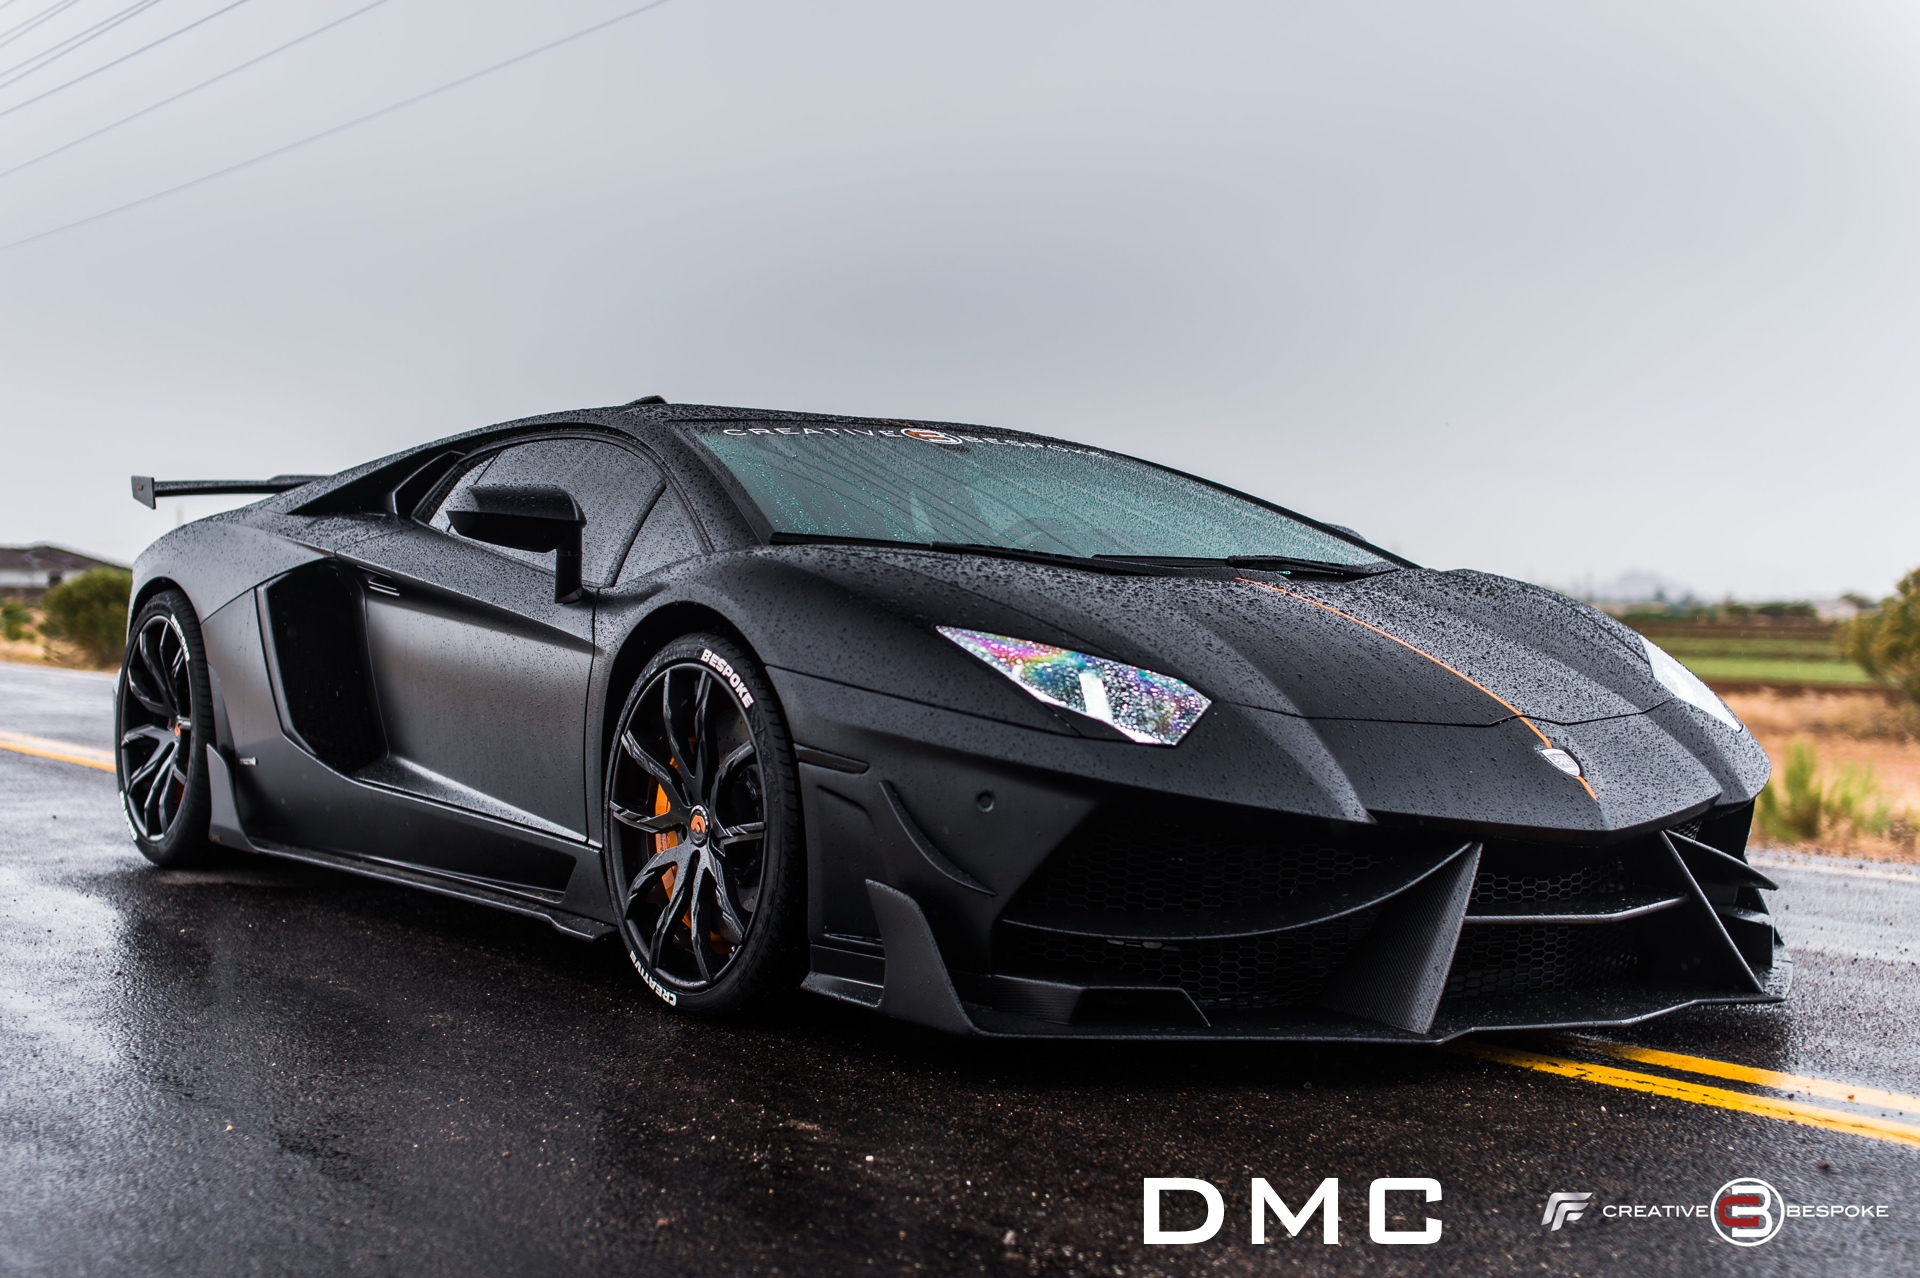 Dmc Tuning Takes The Lamborghini Aventador And Adds Lightness